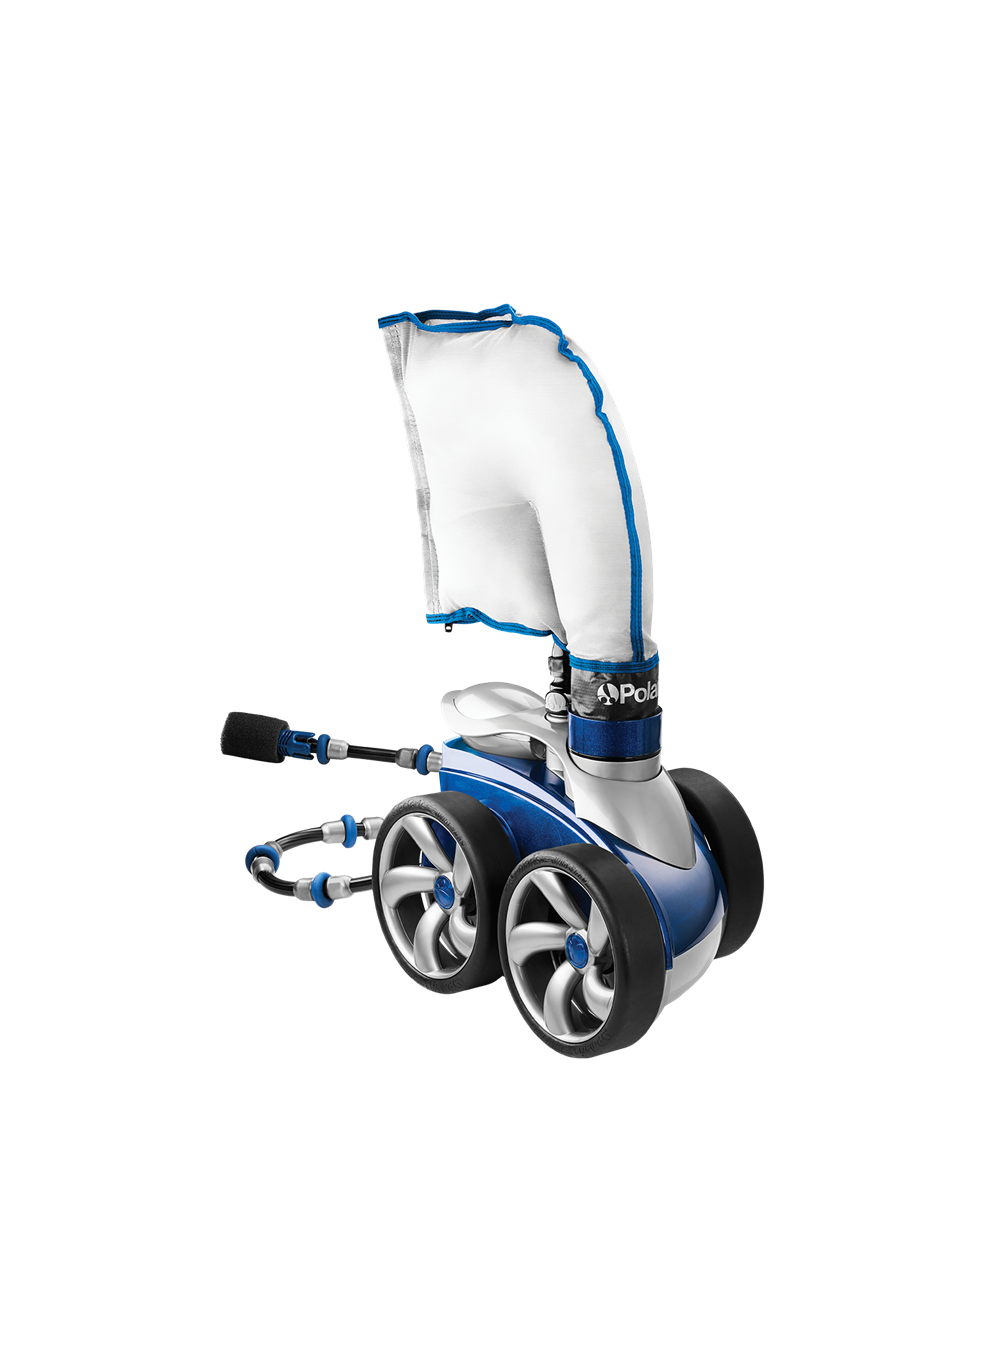 Polaris 3900 Sport Pressure Pool Cleaner